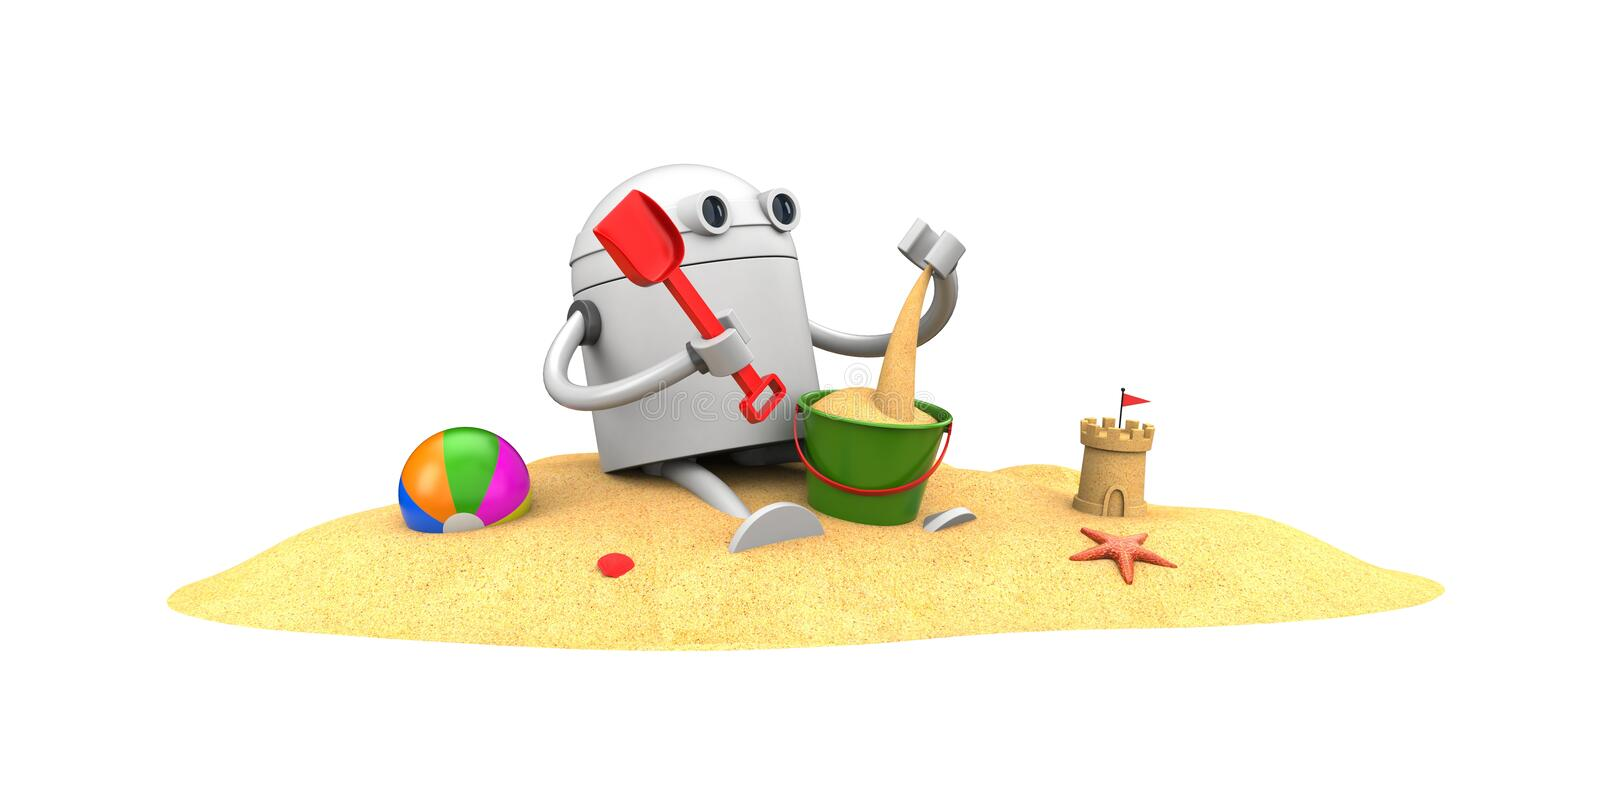 Robot plays in the sand with toys royalty free illustration